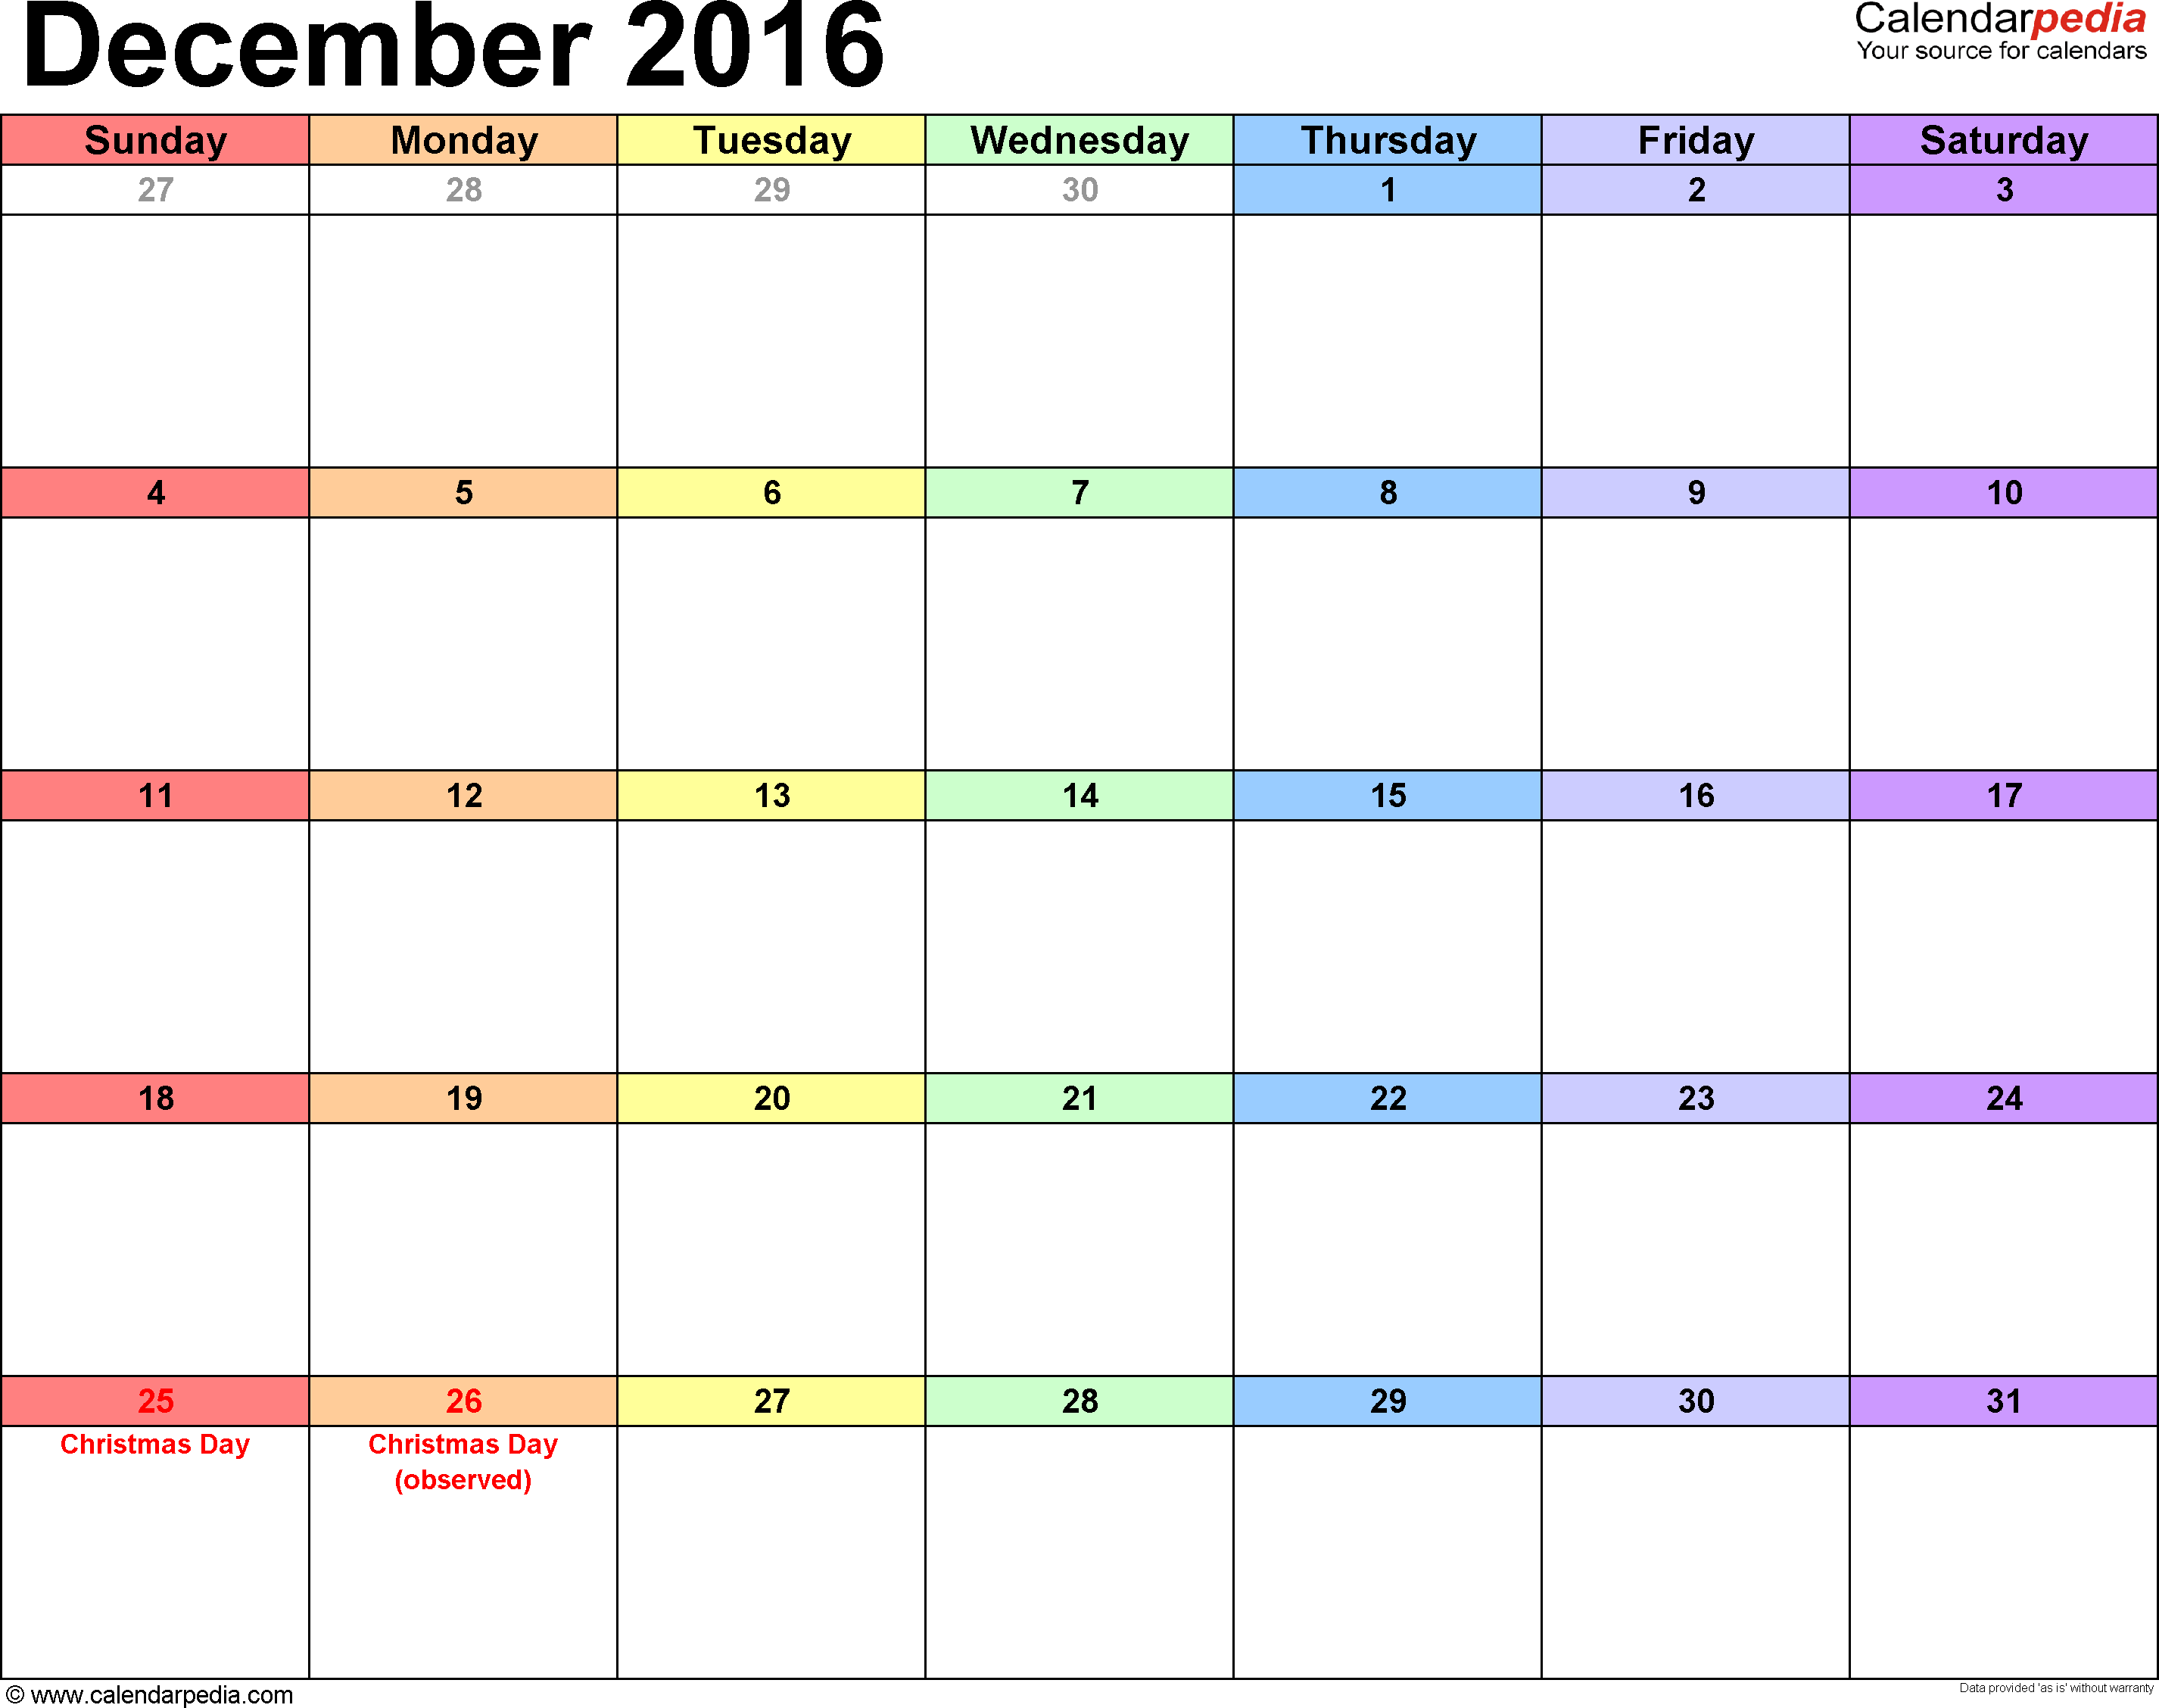 December 2016 Calendars For Word Excel Pdf